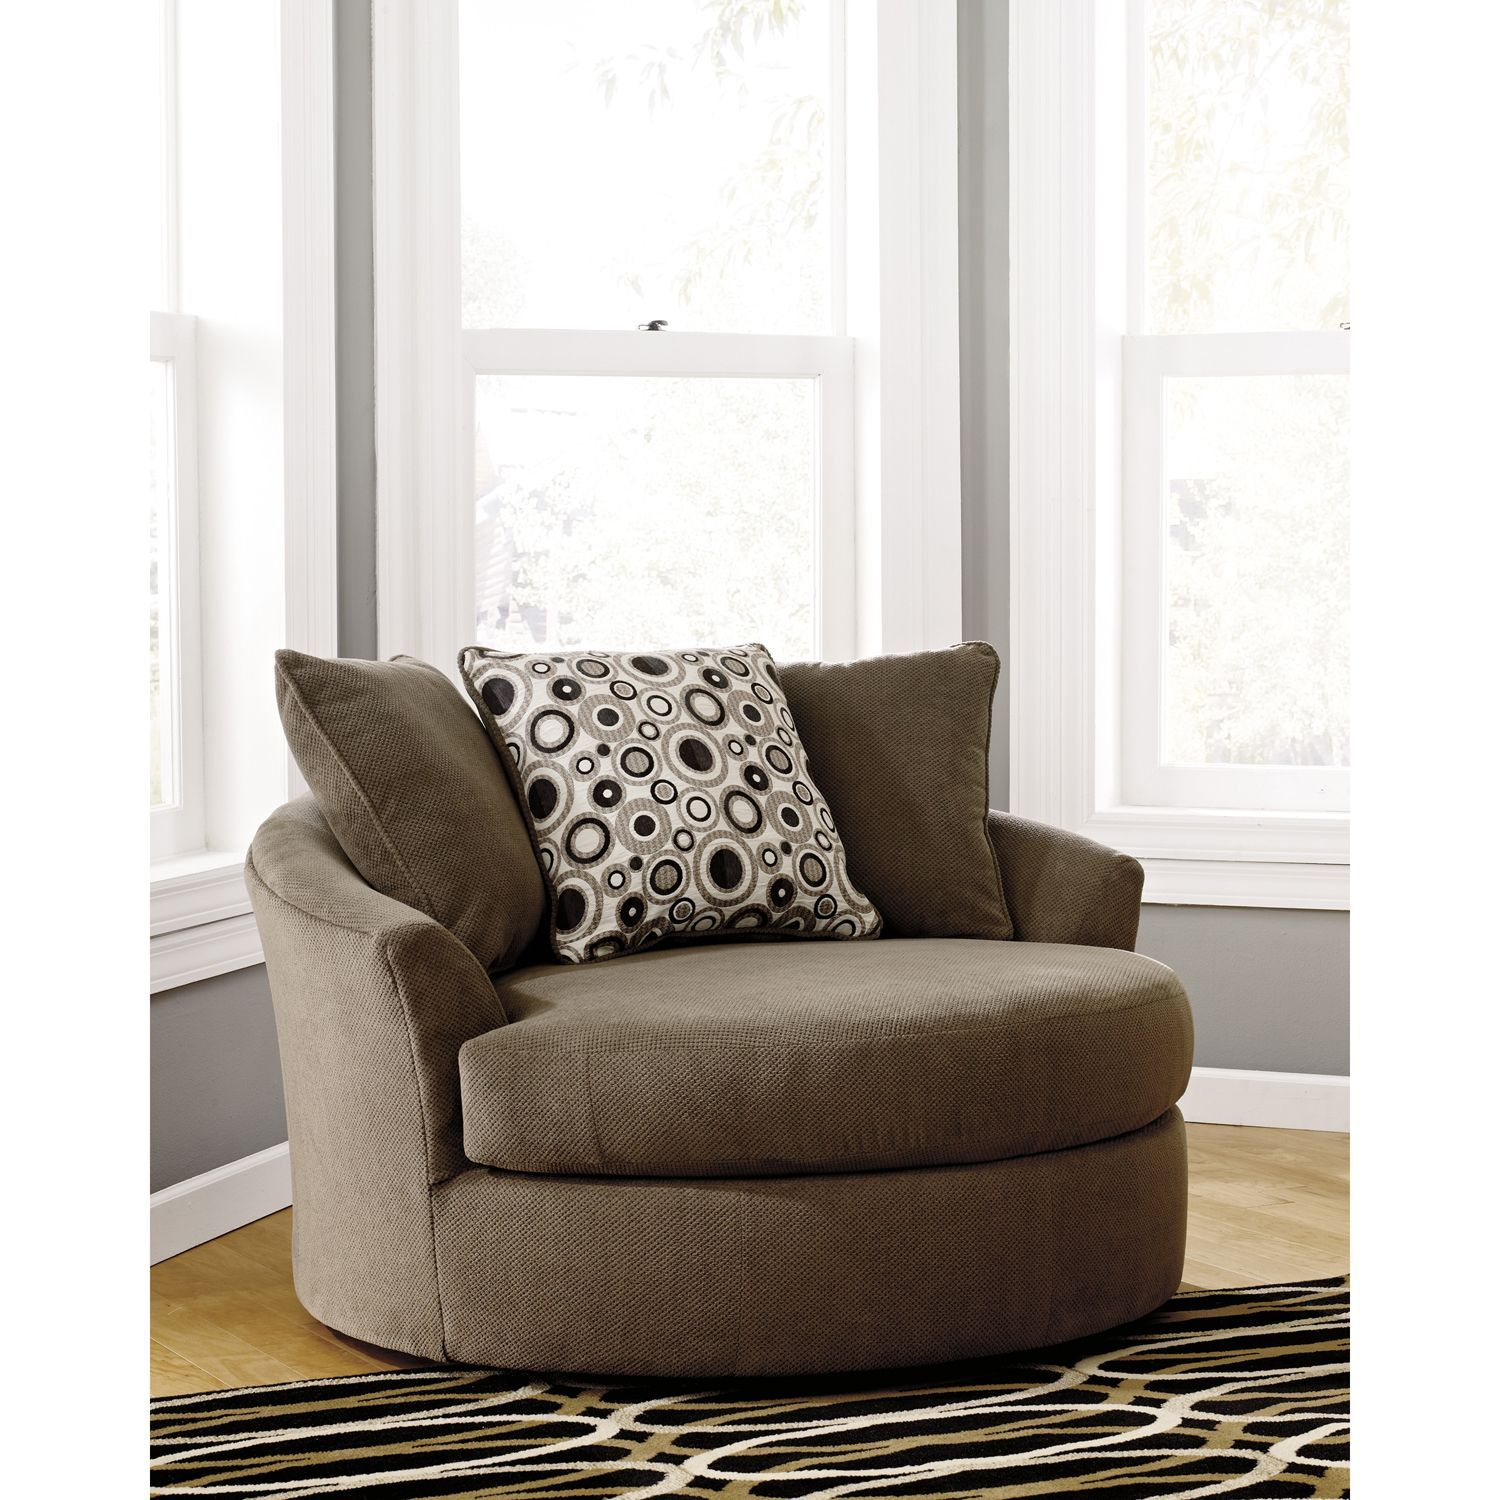 Roenik Oversized Swivel Accent Chair  Sams Club I need